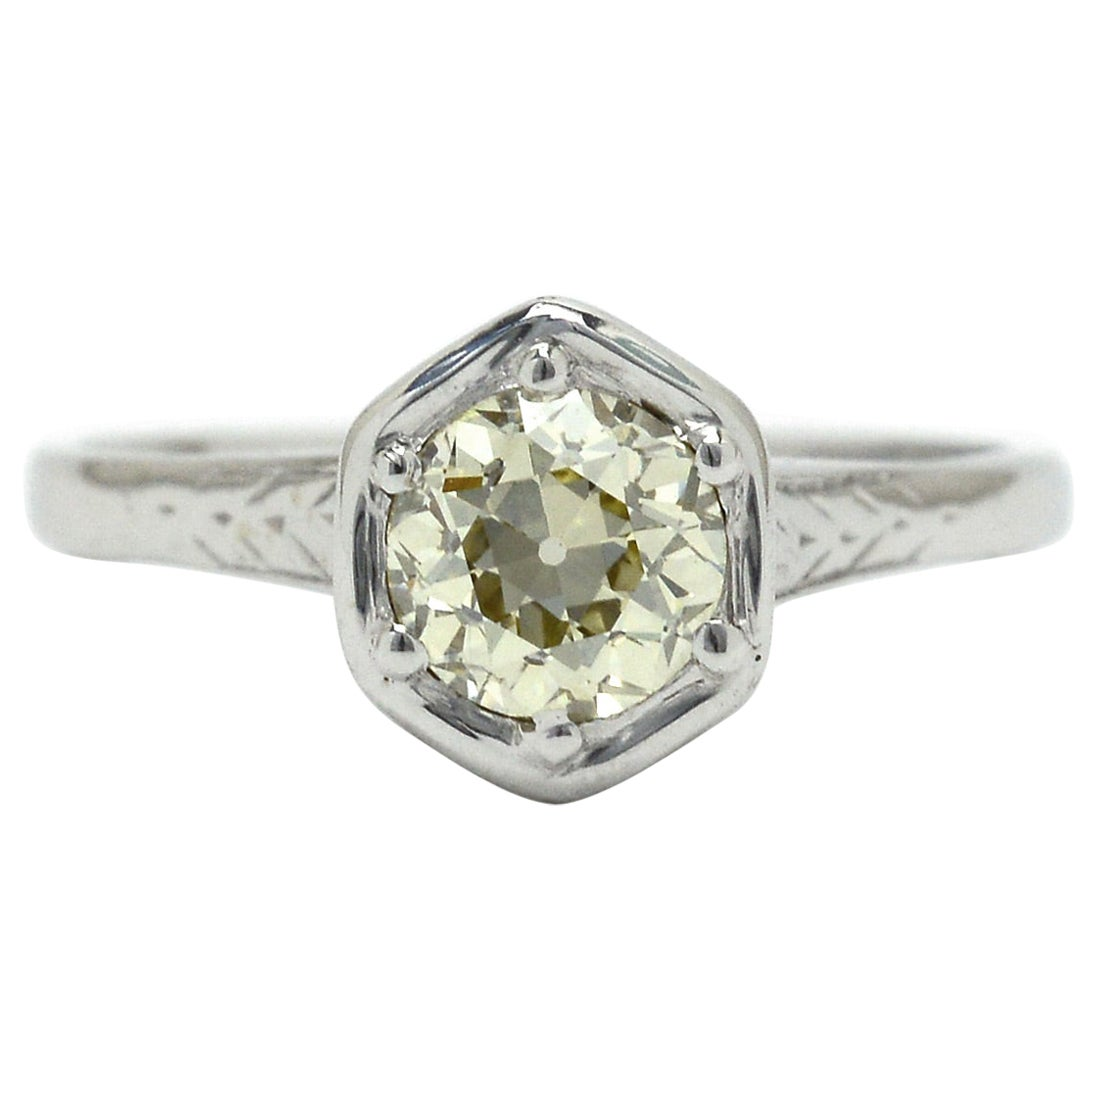 100 Year Old Antique Art Deco Engagement Ring Diamond Solitaire Old Mine Cut